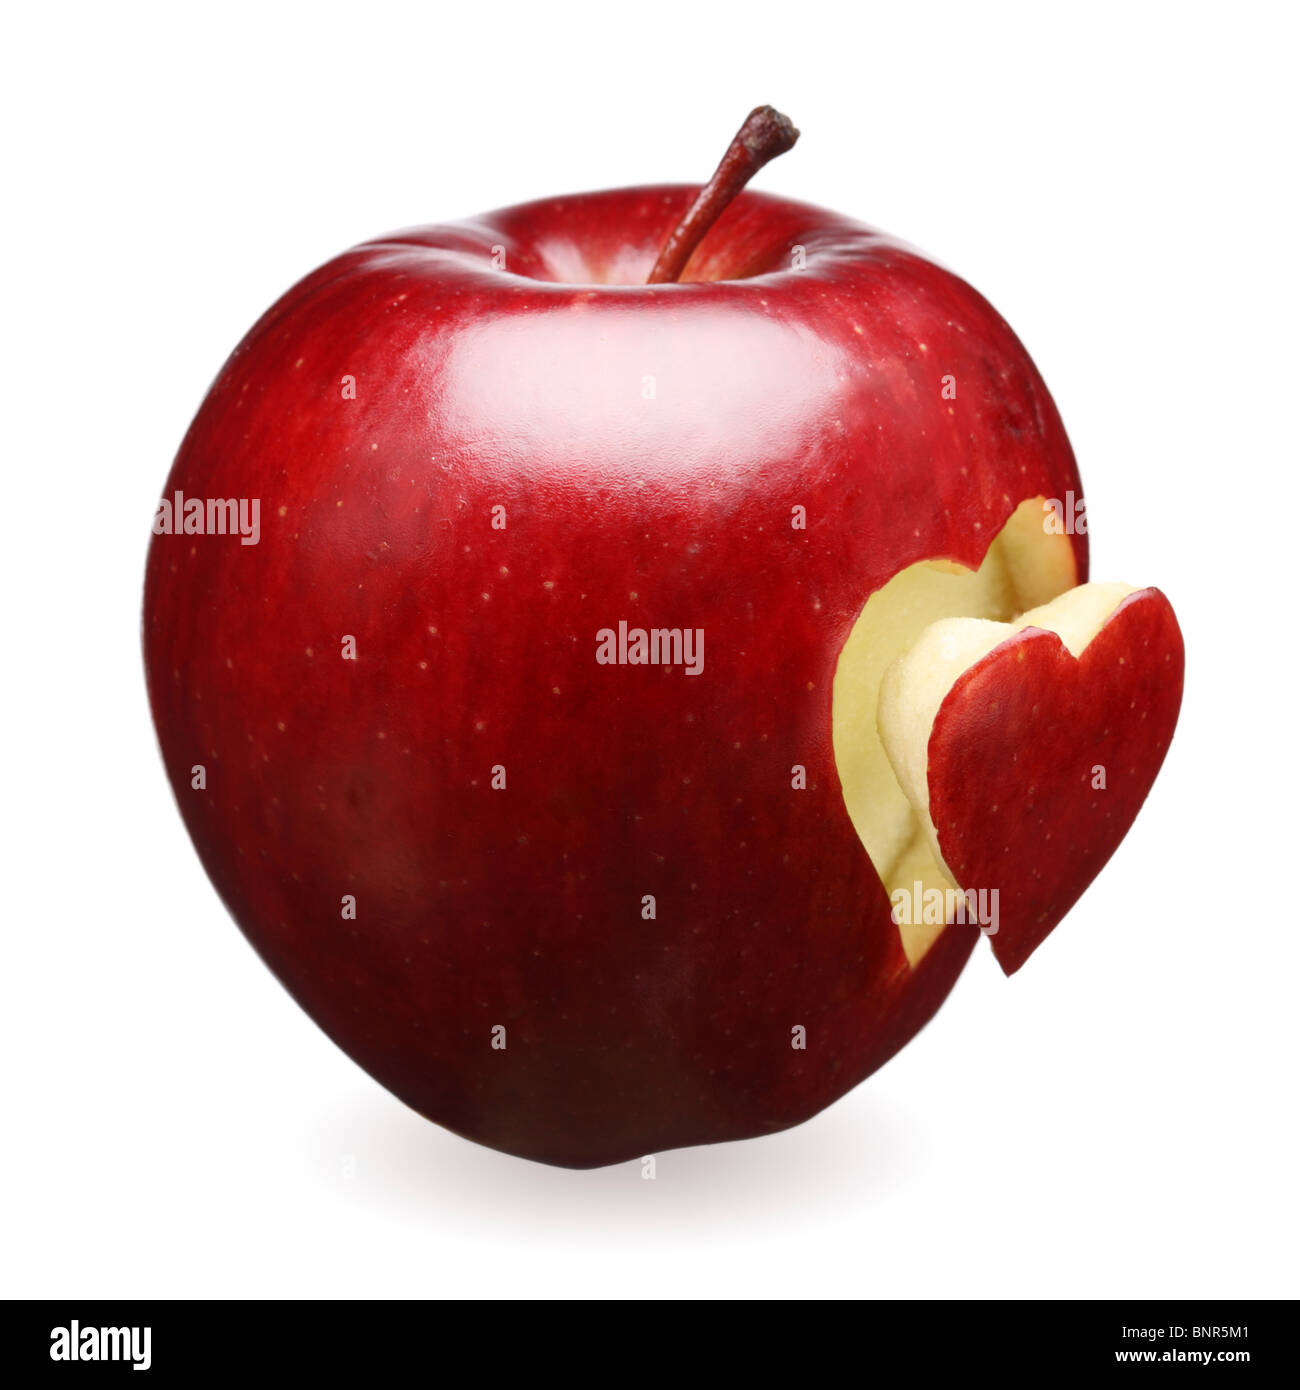 Red apple with a heart shape cut-out (isolated against white) - Stock Image